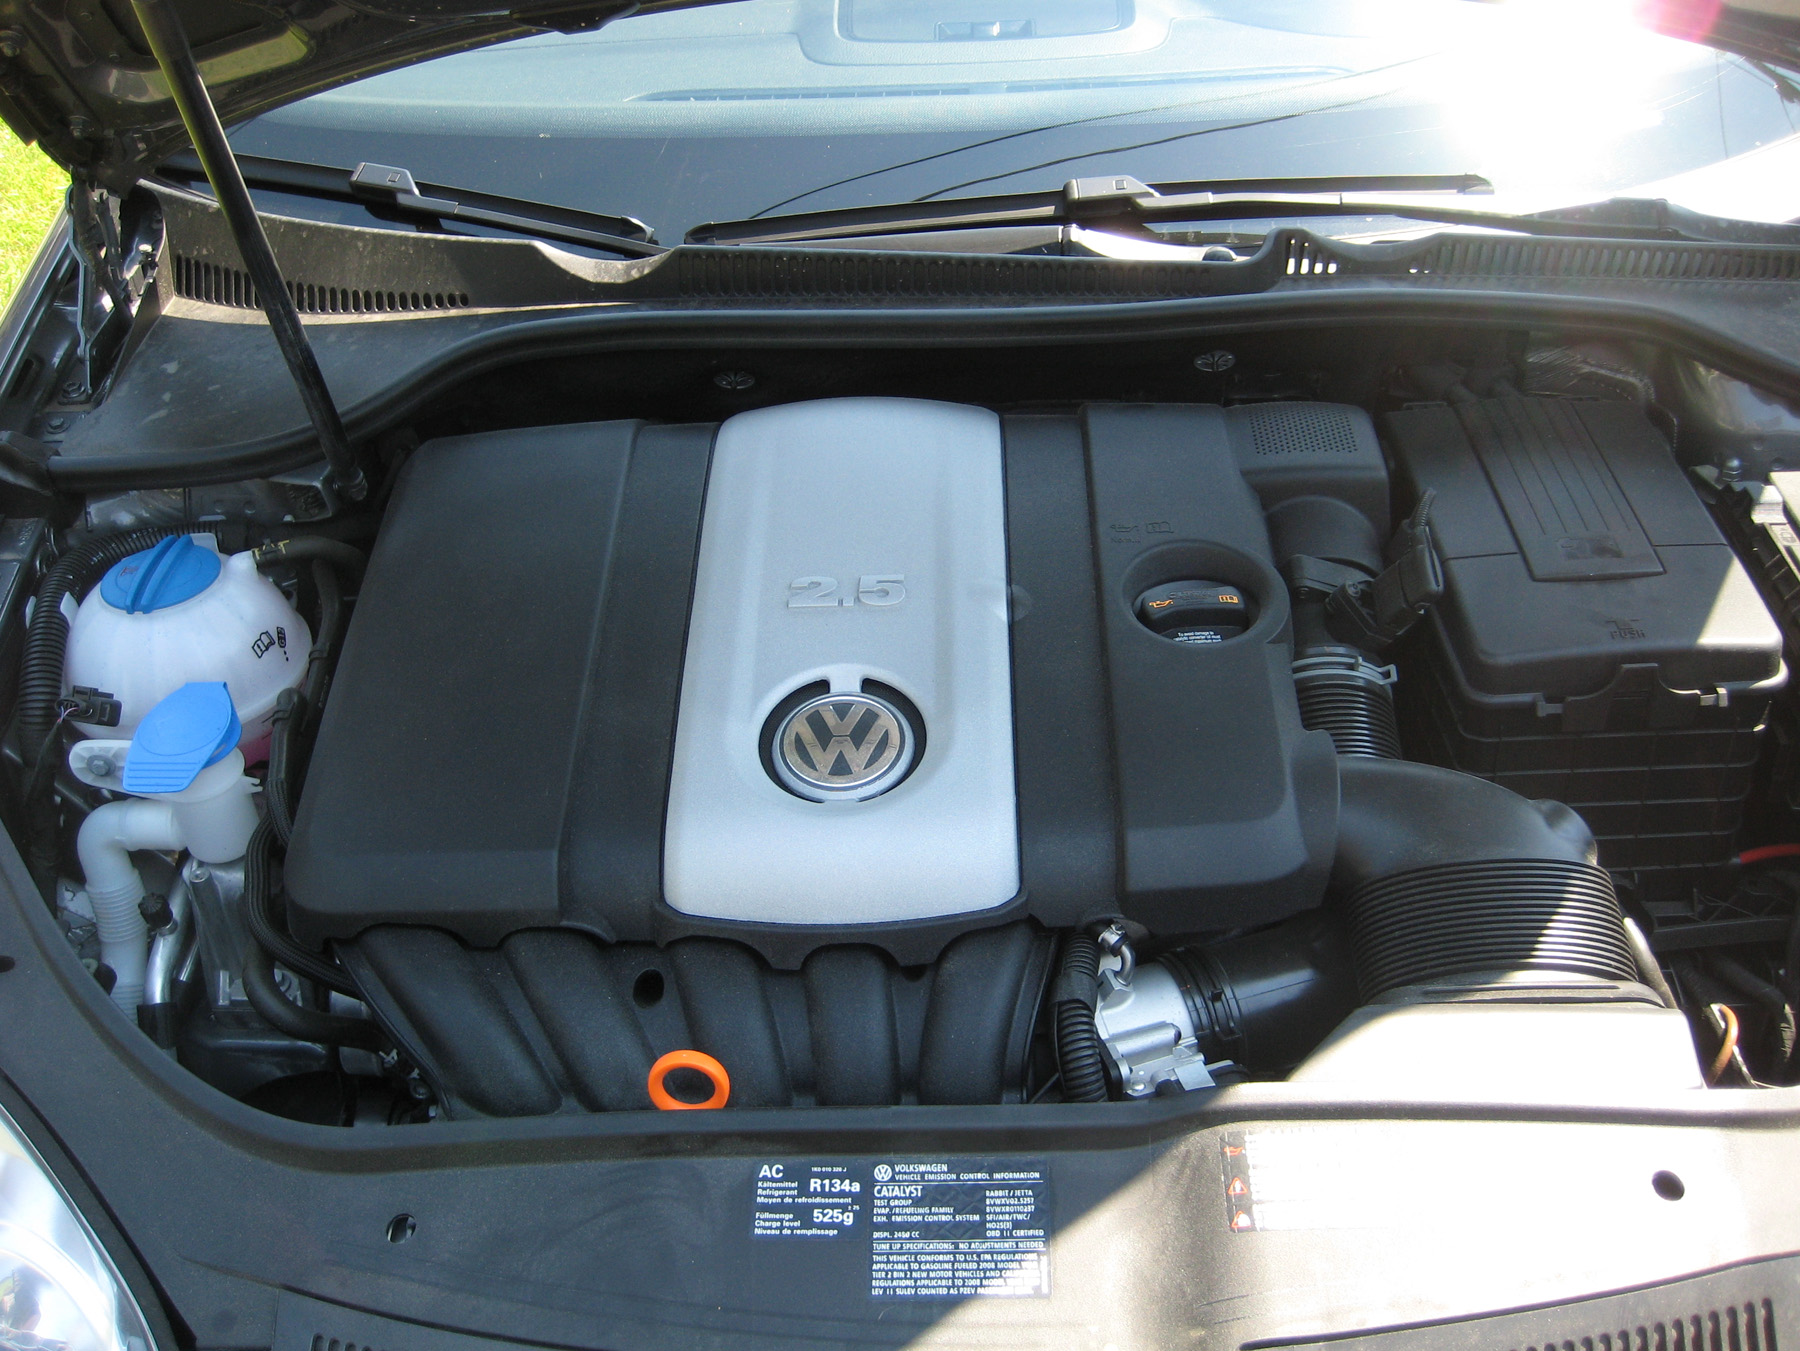 Golf engine bay with 2.5L 5-cylinder engine